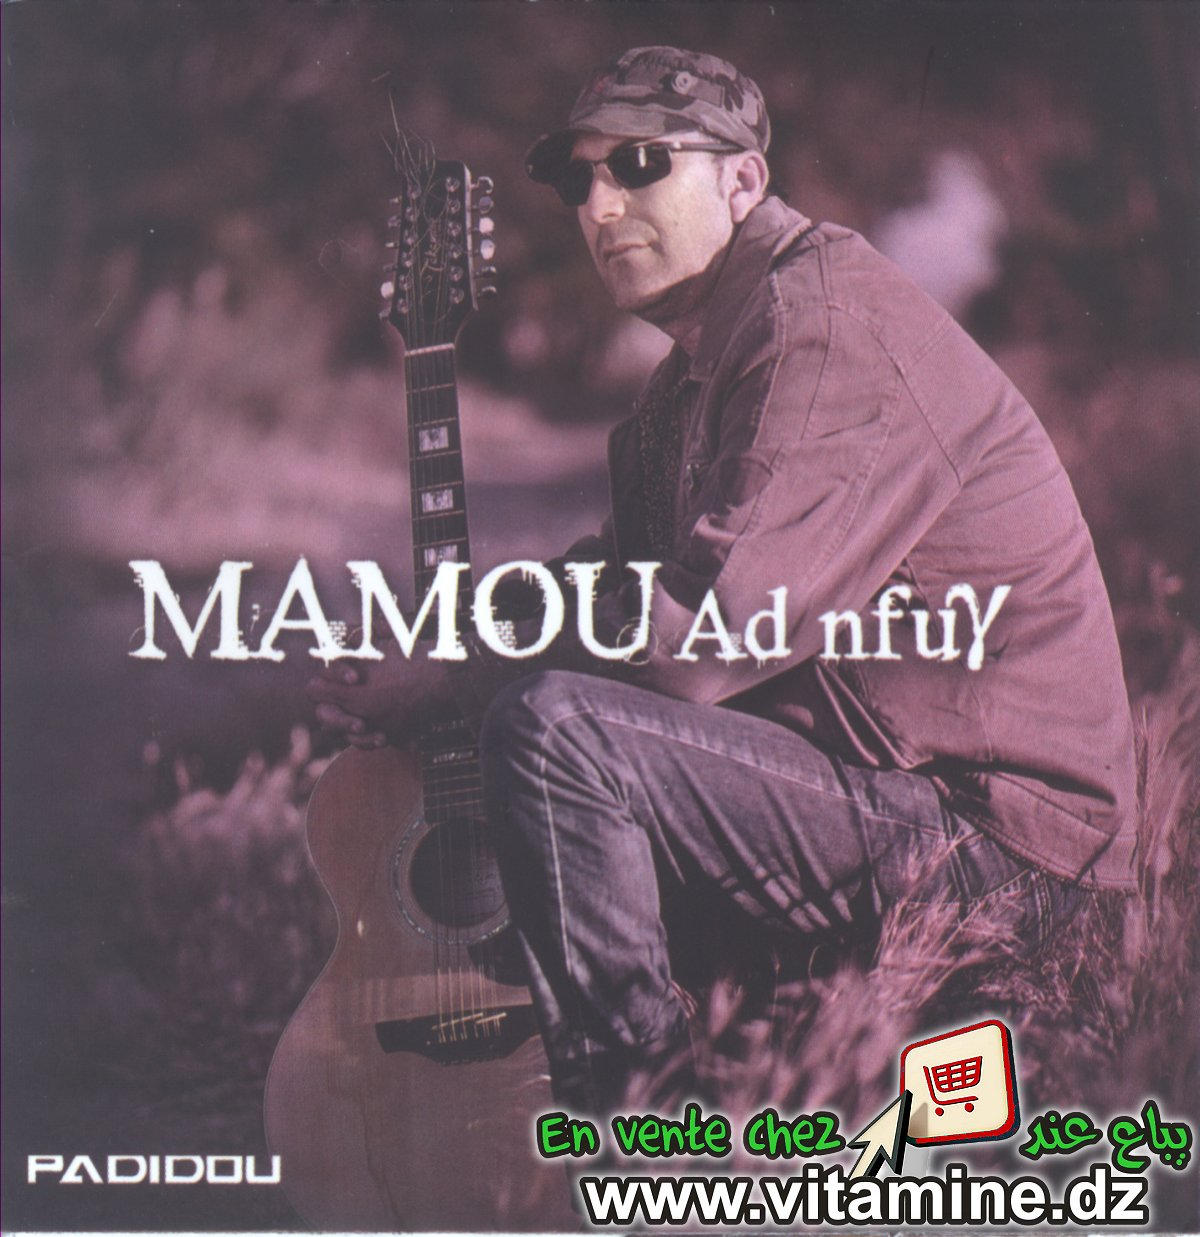 Mamou - Ad nfuy